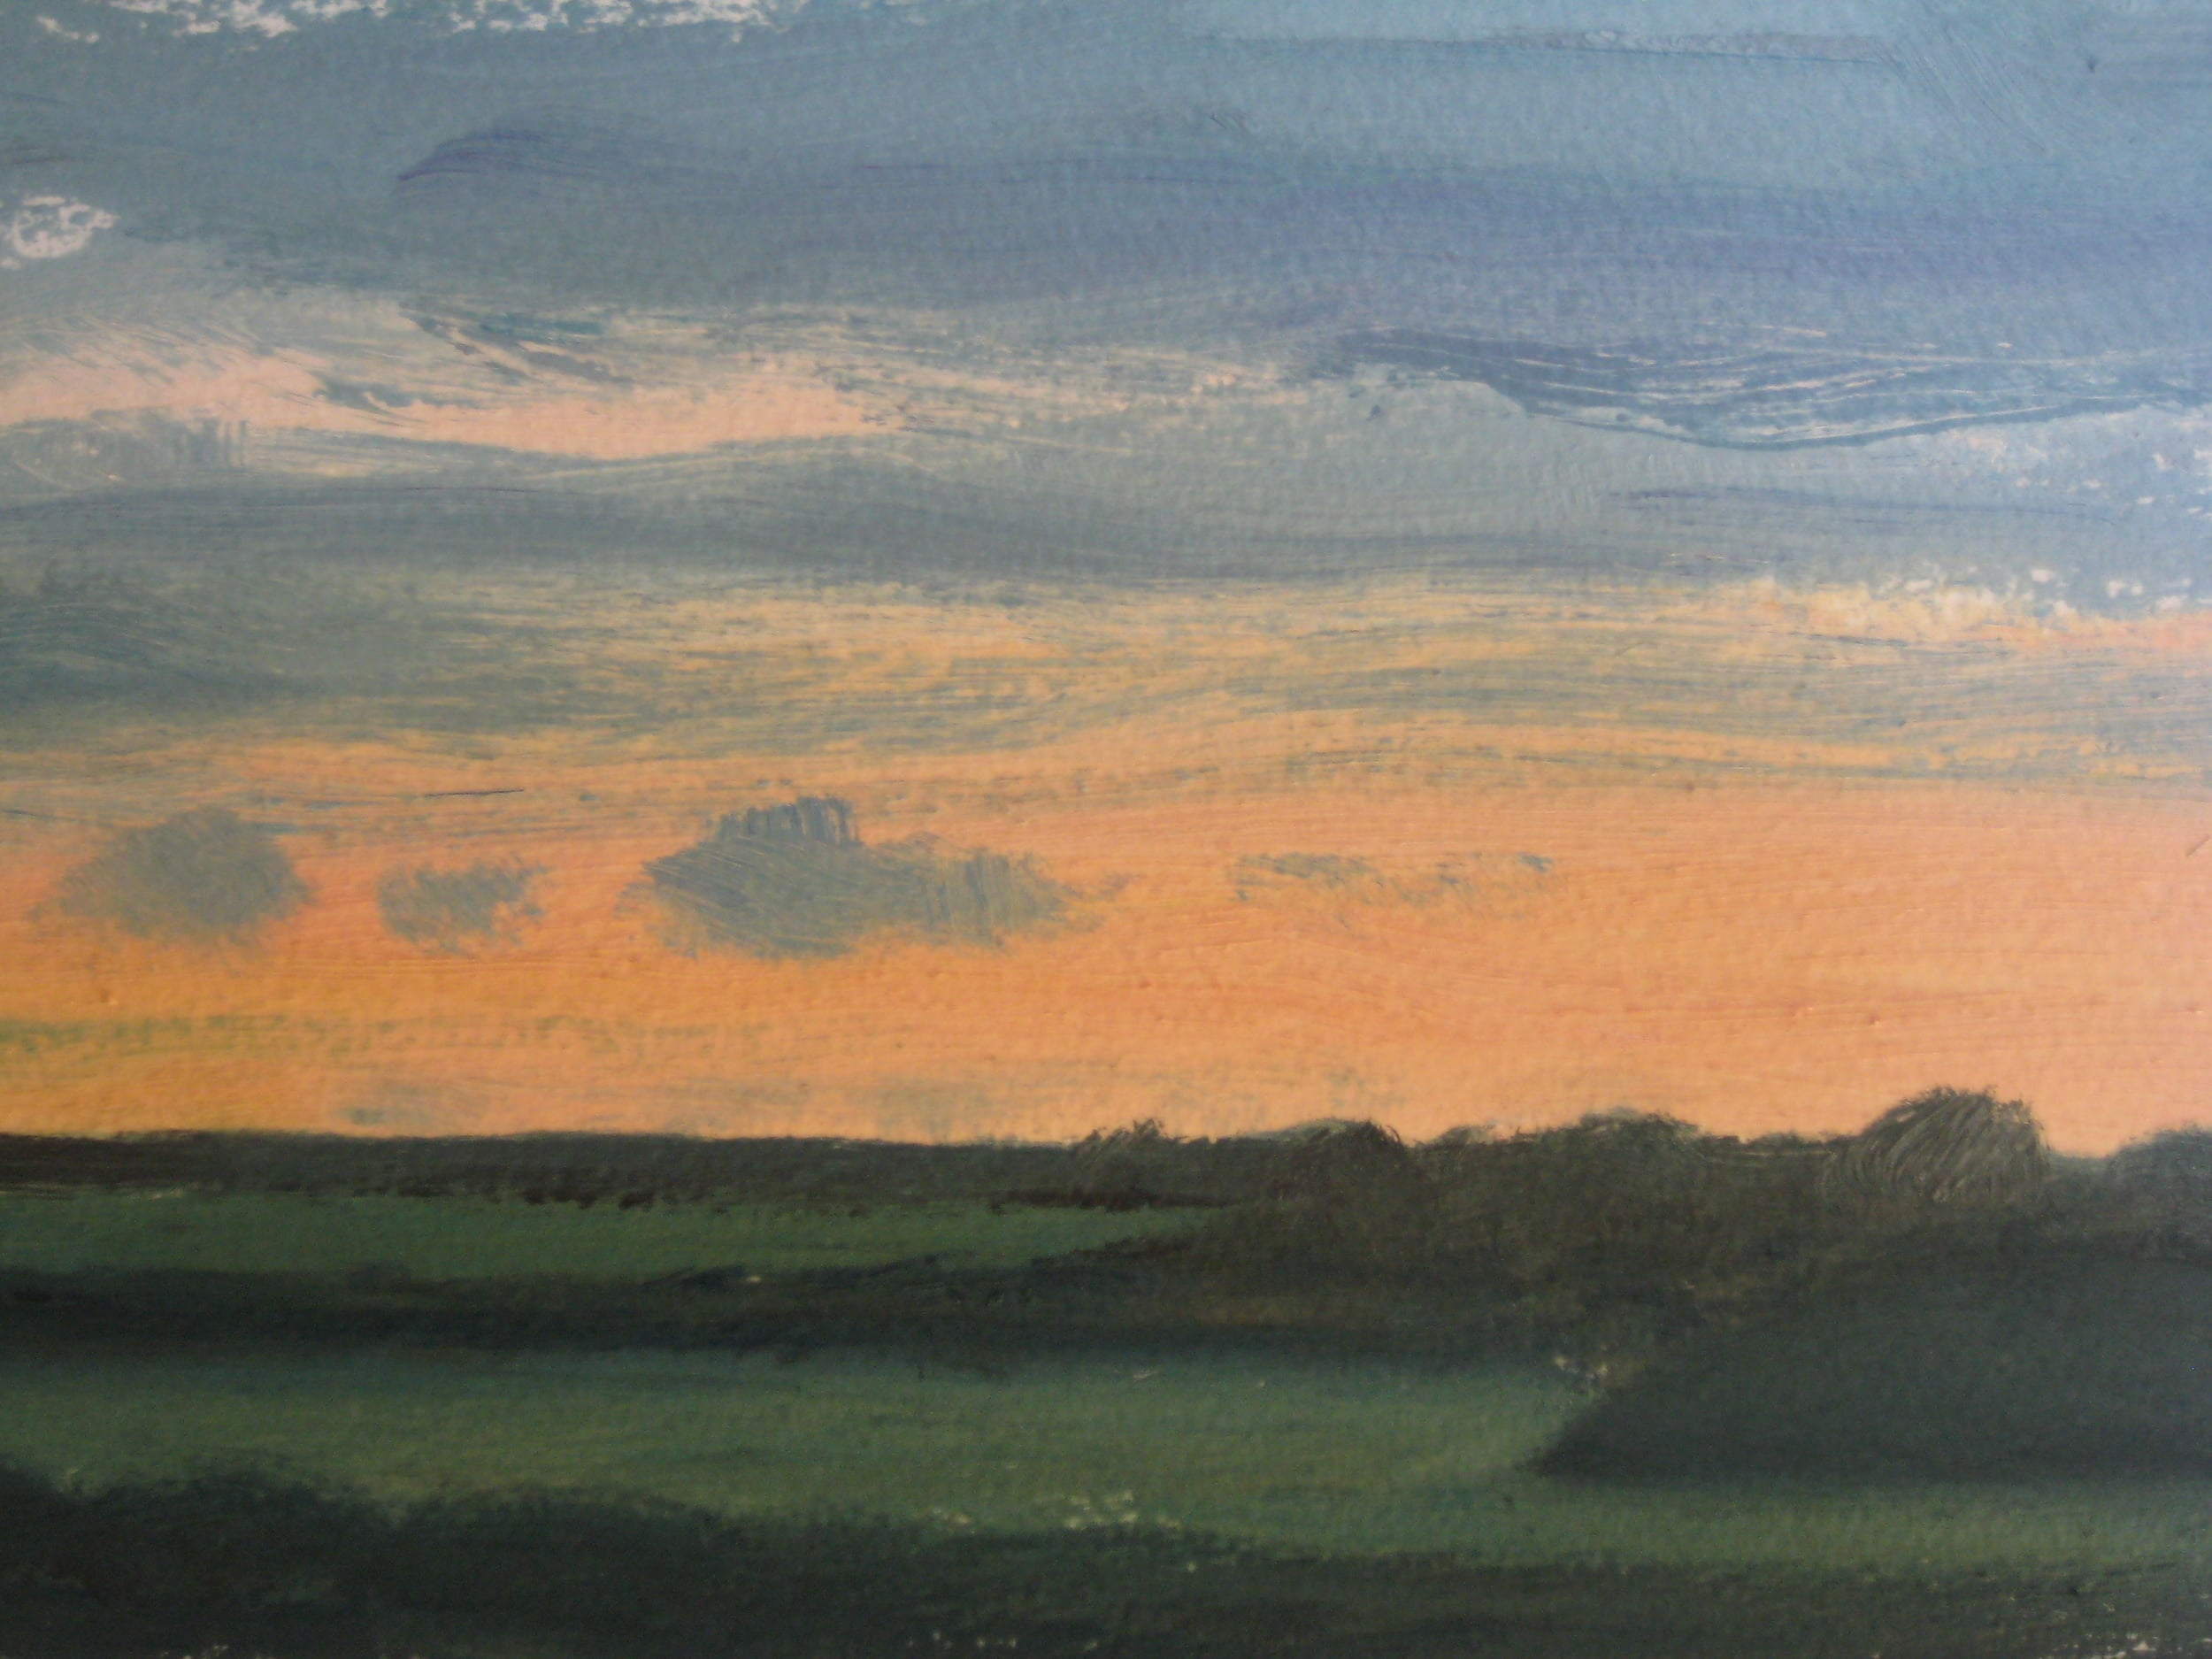 "WEST CORNWALL   8X6"" (21 X 15cm)  Oil on heavy paper   Sold"